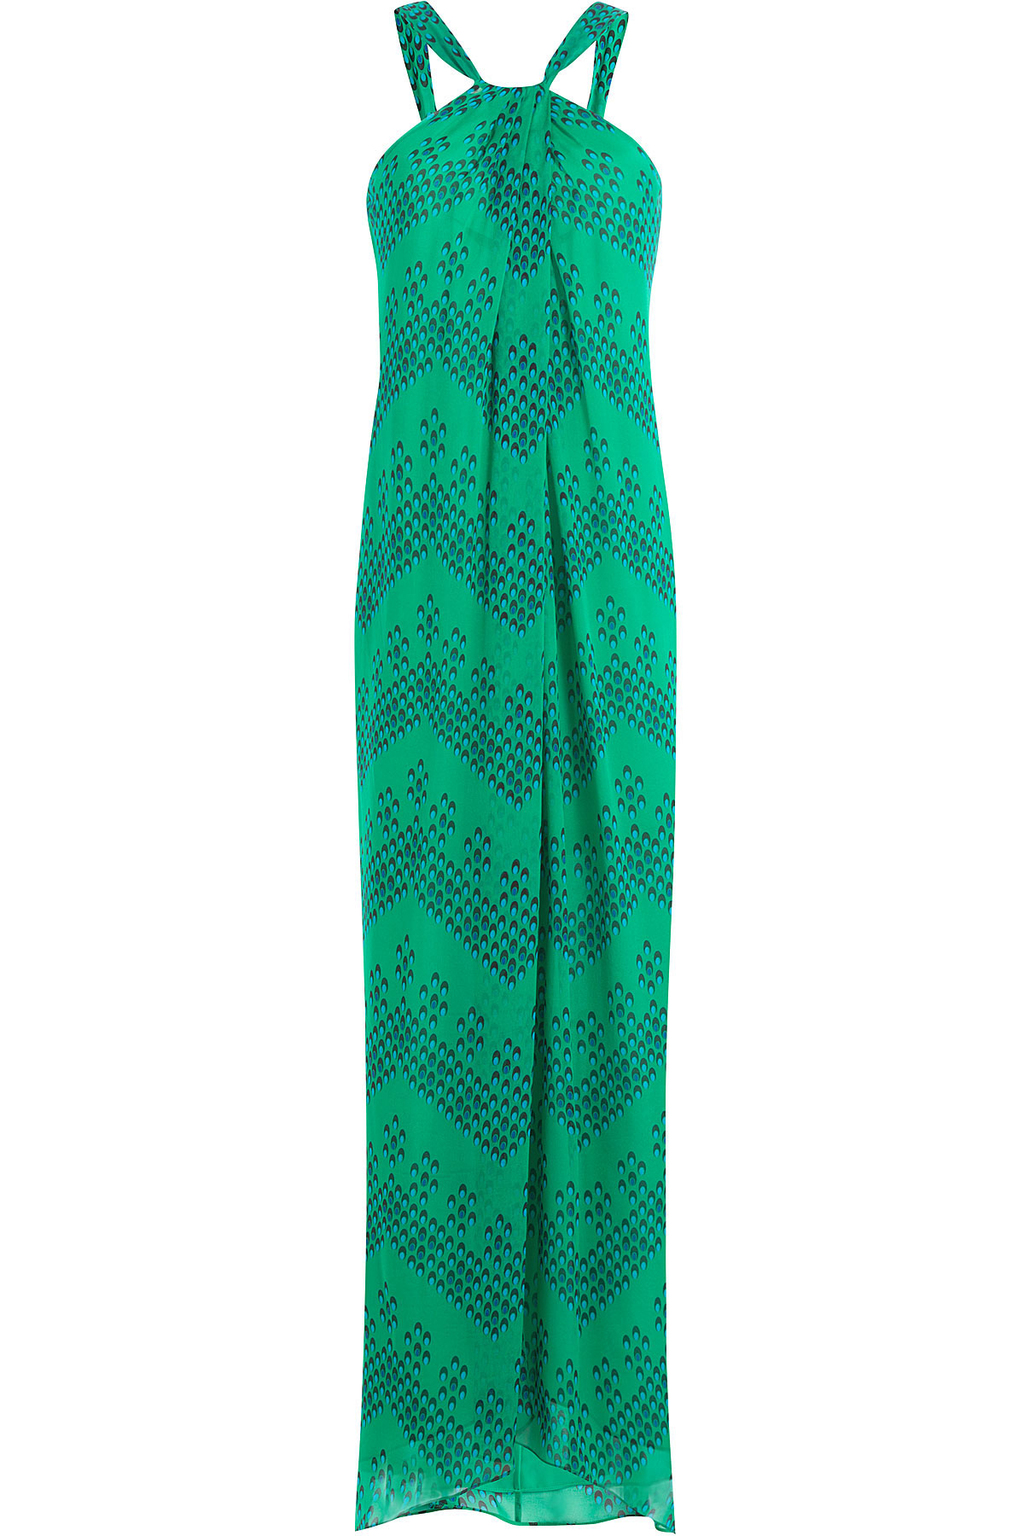 Printed Silk Maxi Dress - sleeve style: sleeveless; style: maxi dress; length: ankle length; secondary colour: royal blue; predominant colour: emerald green; fit: body skimming; fibres: silk - 100%; occasions: occasion; sleeve length: sleeveless; texture group: sheer fabrics/chiffon/organza etc.; pattern type: fabric; pattern size: standard; pattern: patterned/print; season: s/s 2016; neckline: high halter neck; wardrobe: event